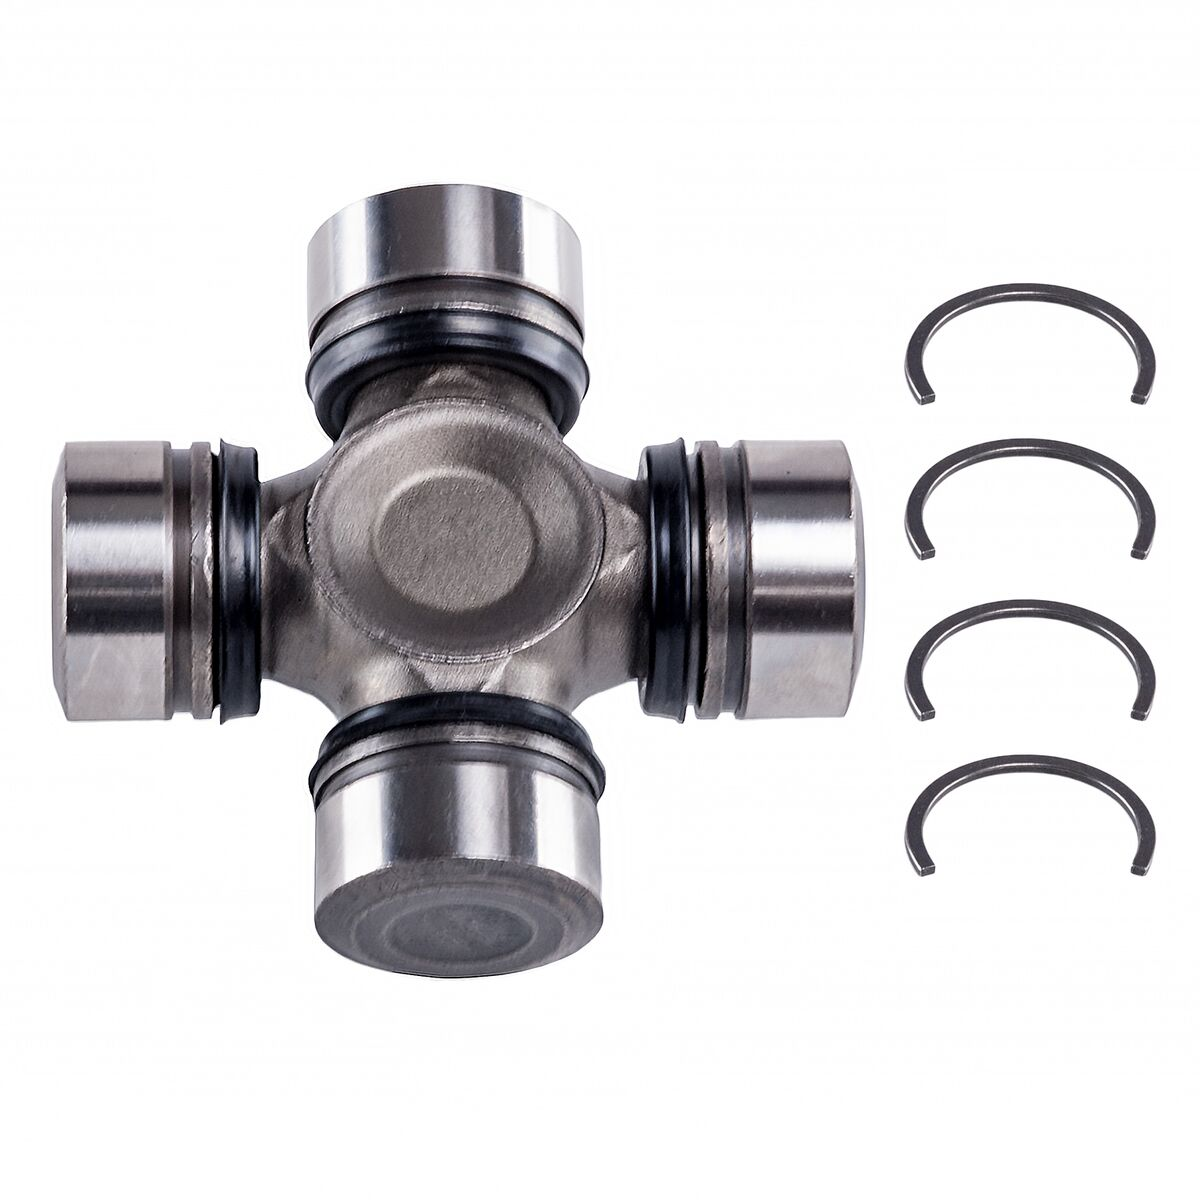 5-760X Motive Gear/Midwest Truck Universal Joint Spicer 1310WJ